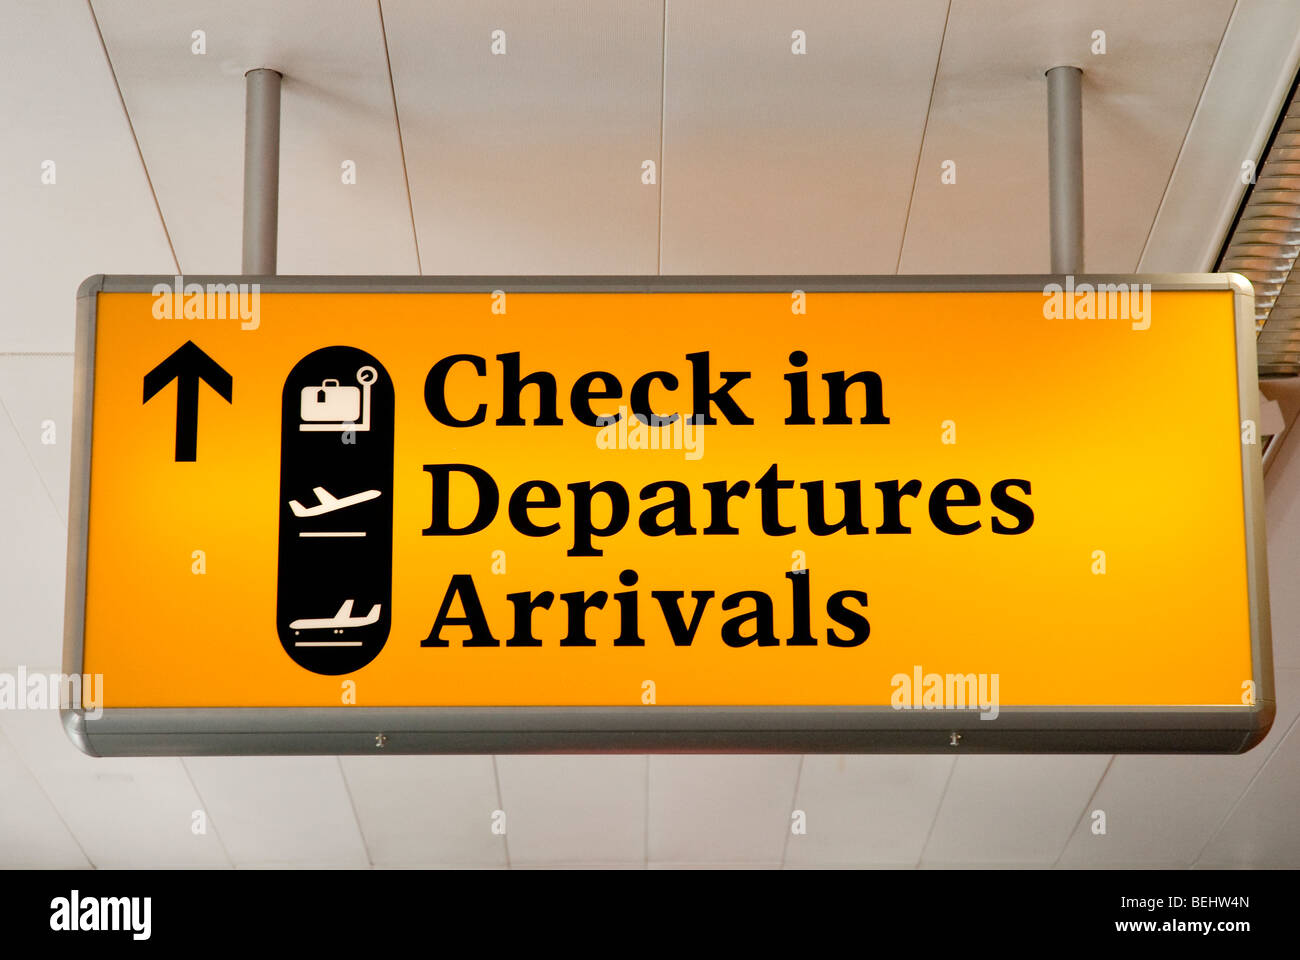 Airport check in, departures, arrivals sign - Stock Image